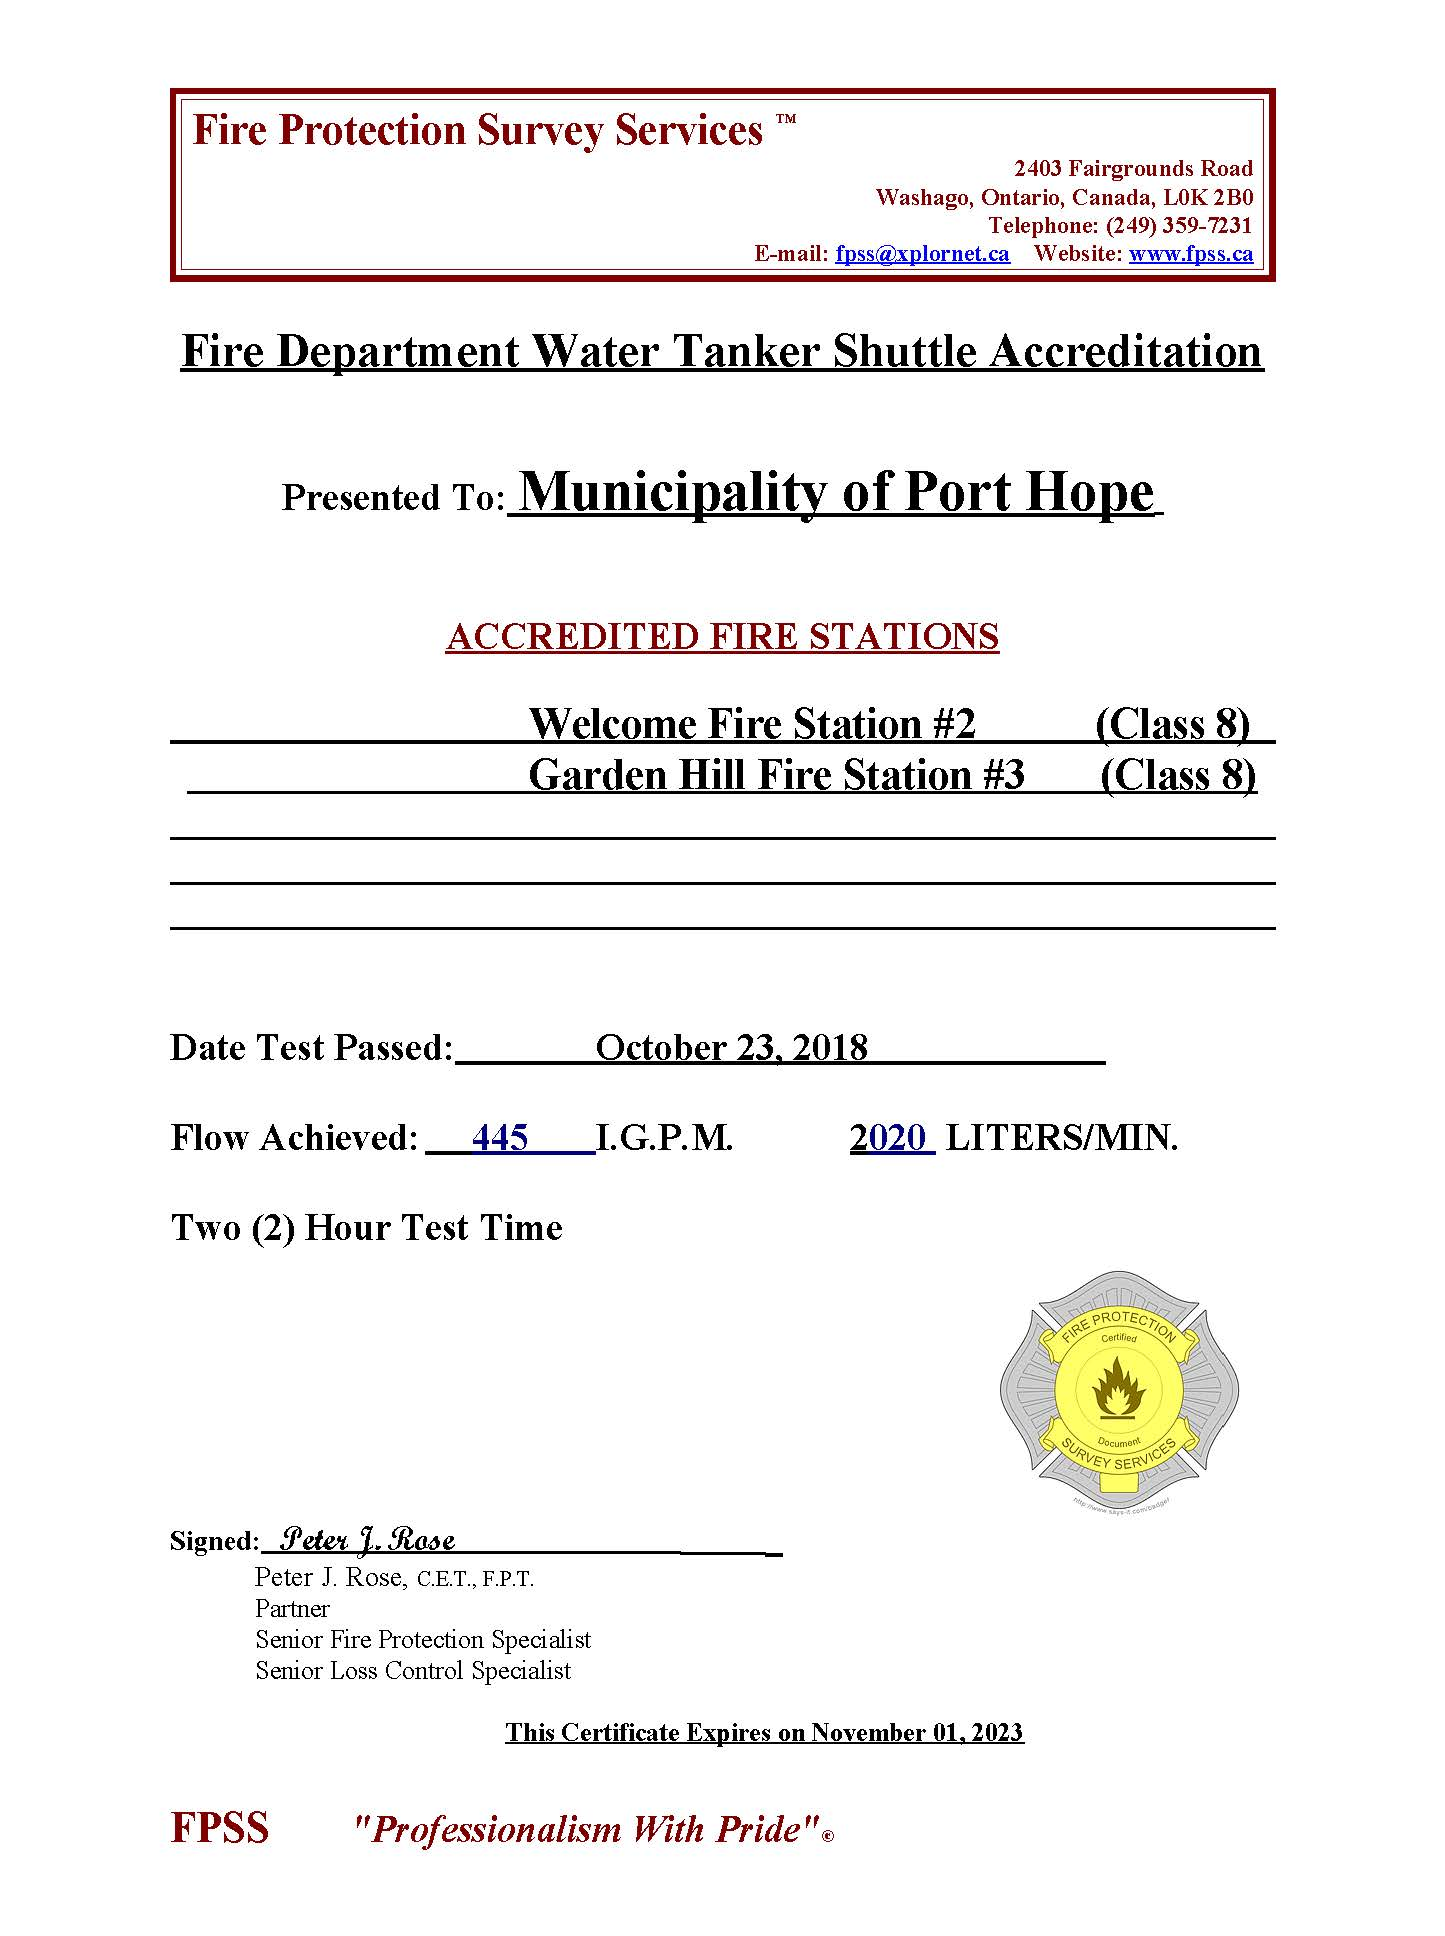 Water Tanker Shuttle Accreditation Certificate